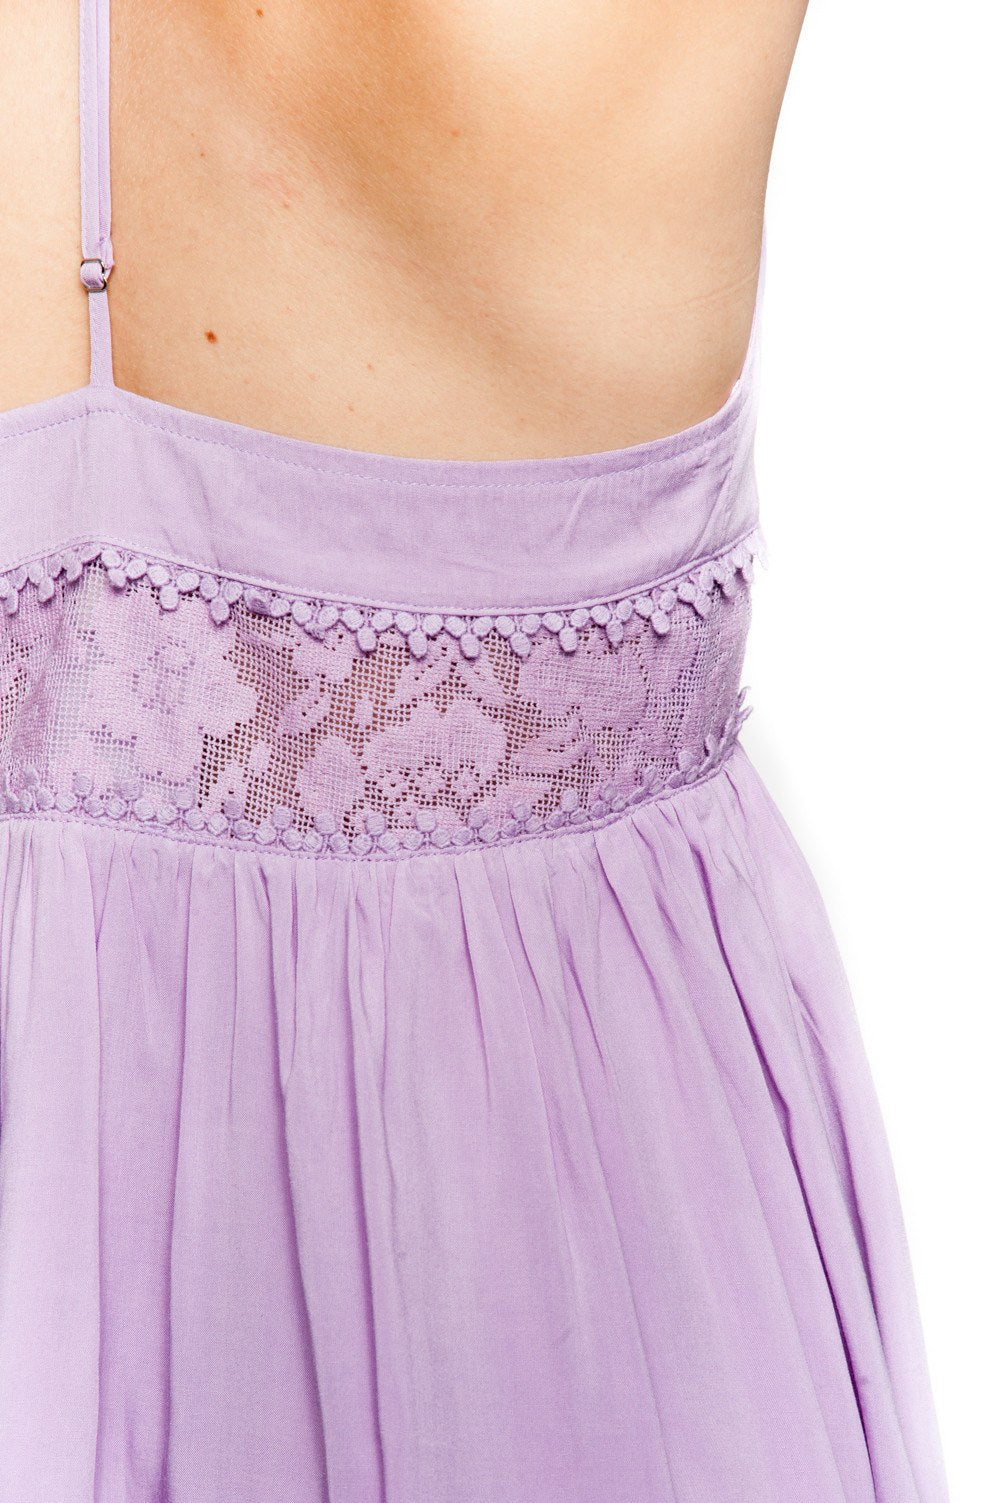 Dress - Lilac Boho Peek-a-Boo - 4